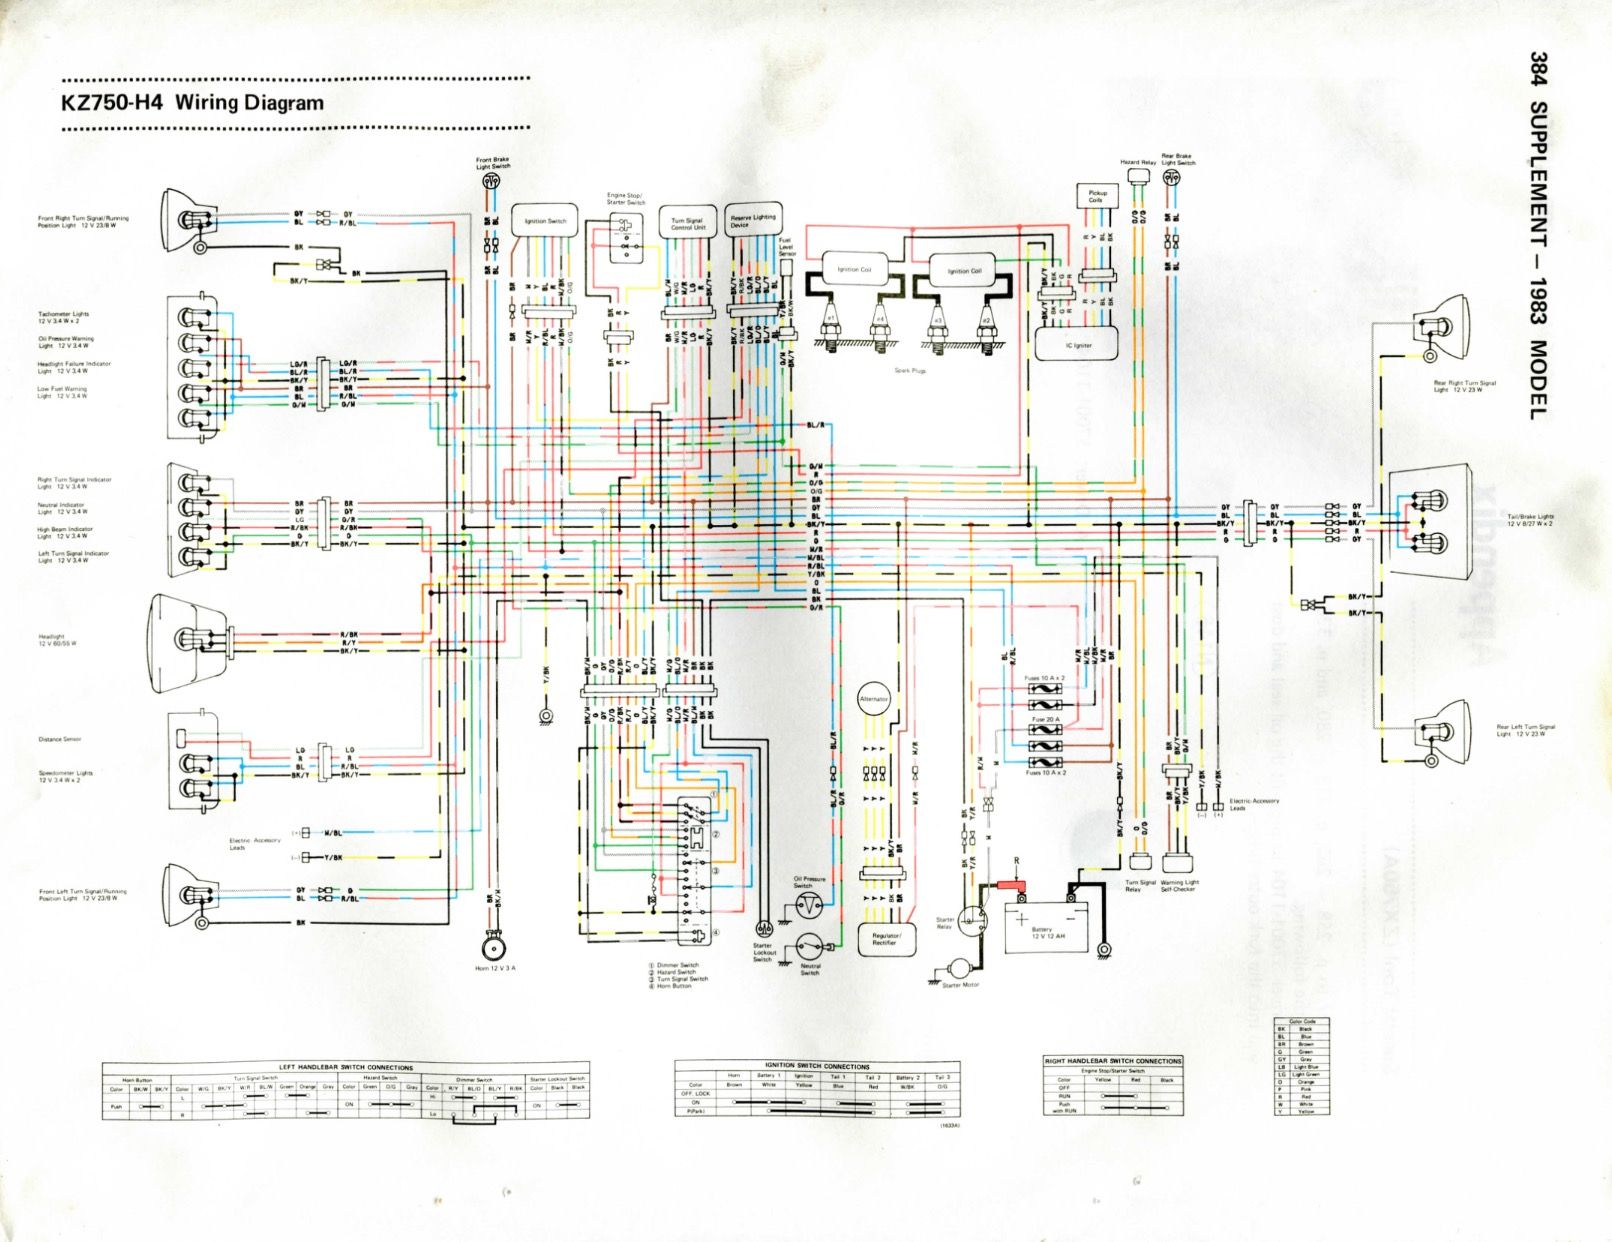 wiring diagram kz750 ltd wiring diagram toolbox kawasaki 750 jet ski wiring diagram kawasaki 750 wiring diagram [ 1612 x 1242 Pixel ]